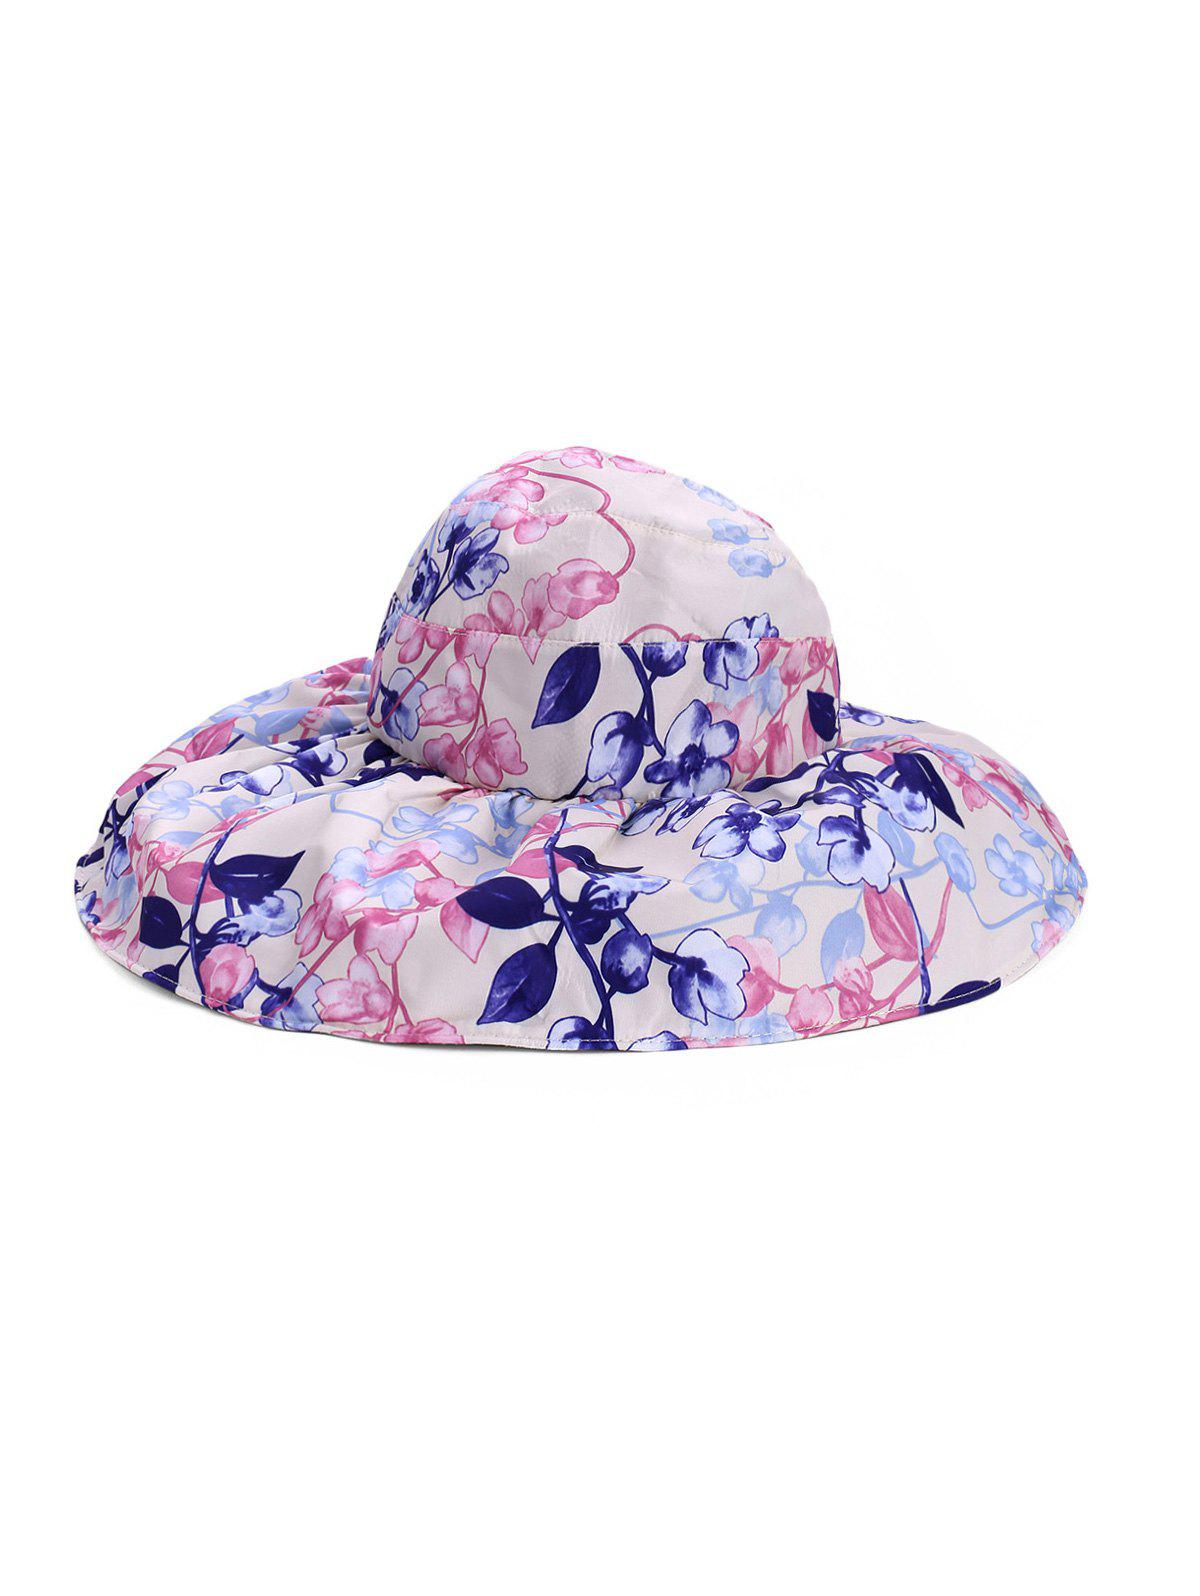 Shops Foldable Flower Pattern Summer UV Protection Visor Cap